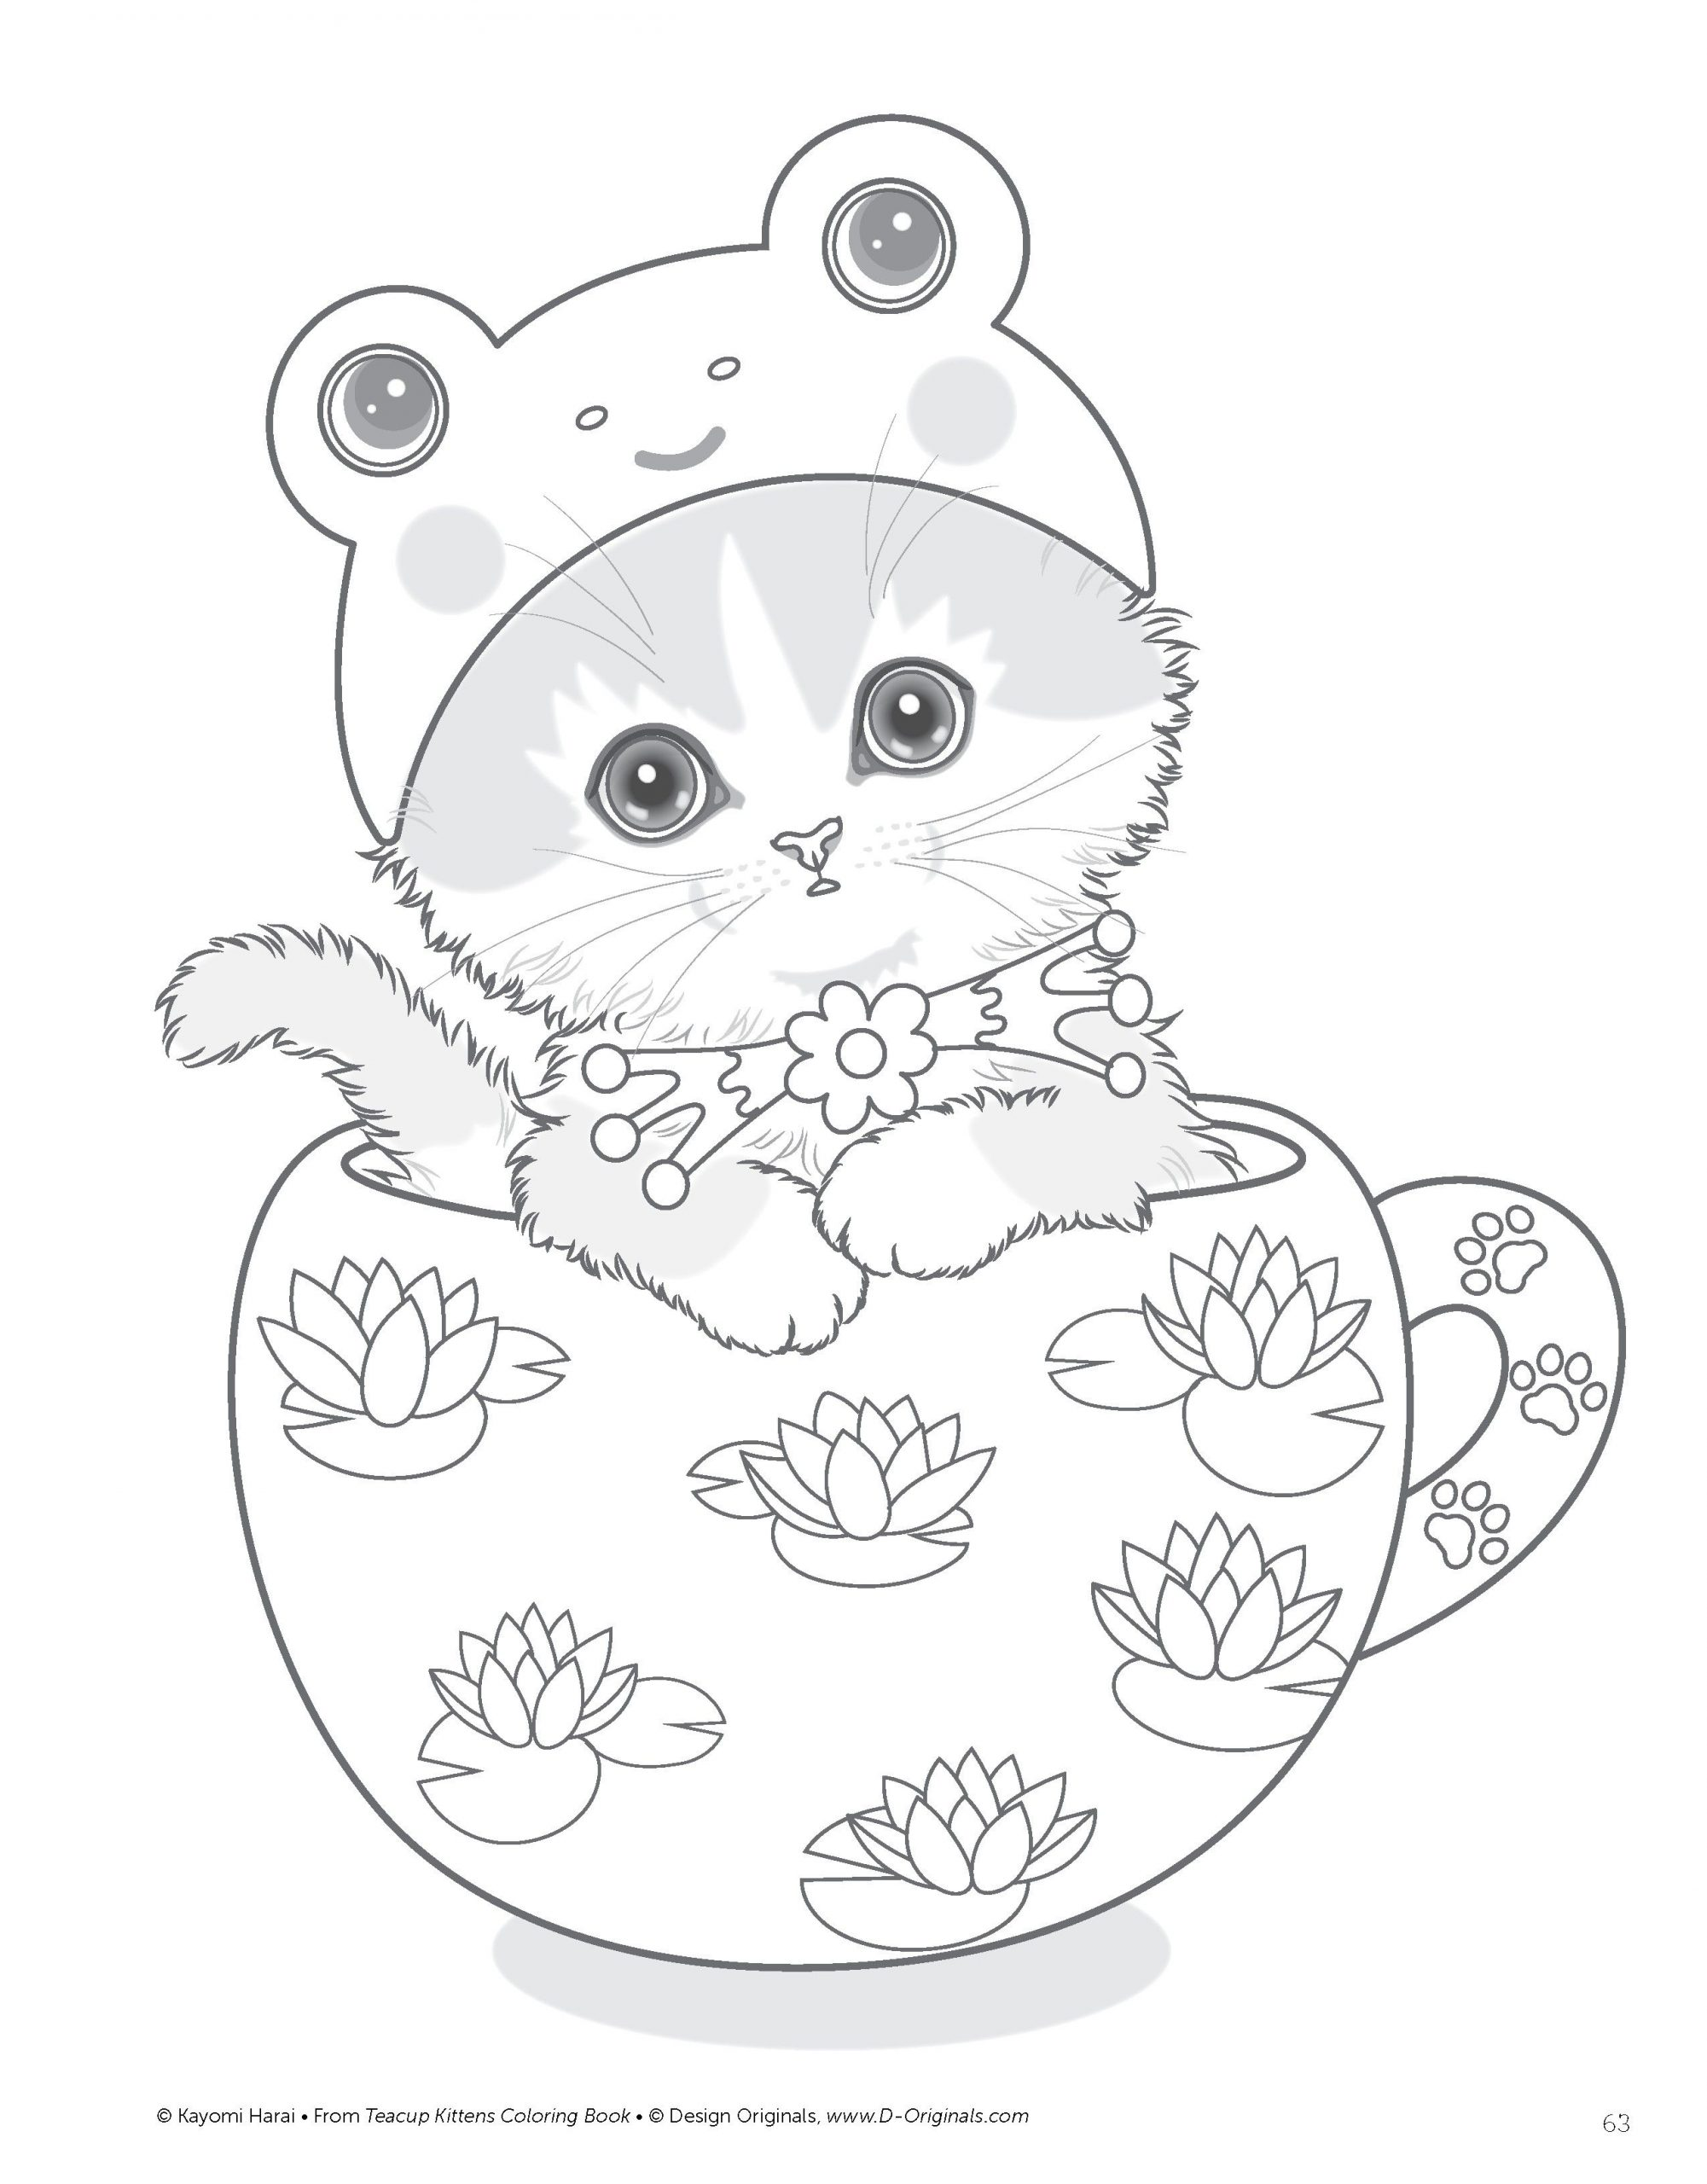 teacup kittens kayomi harai kitten coloring book